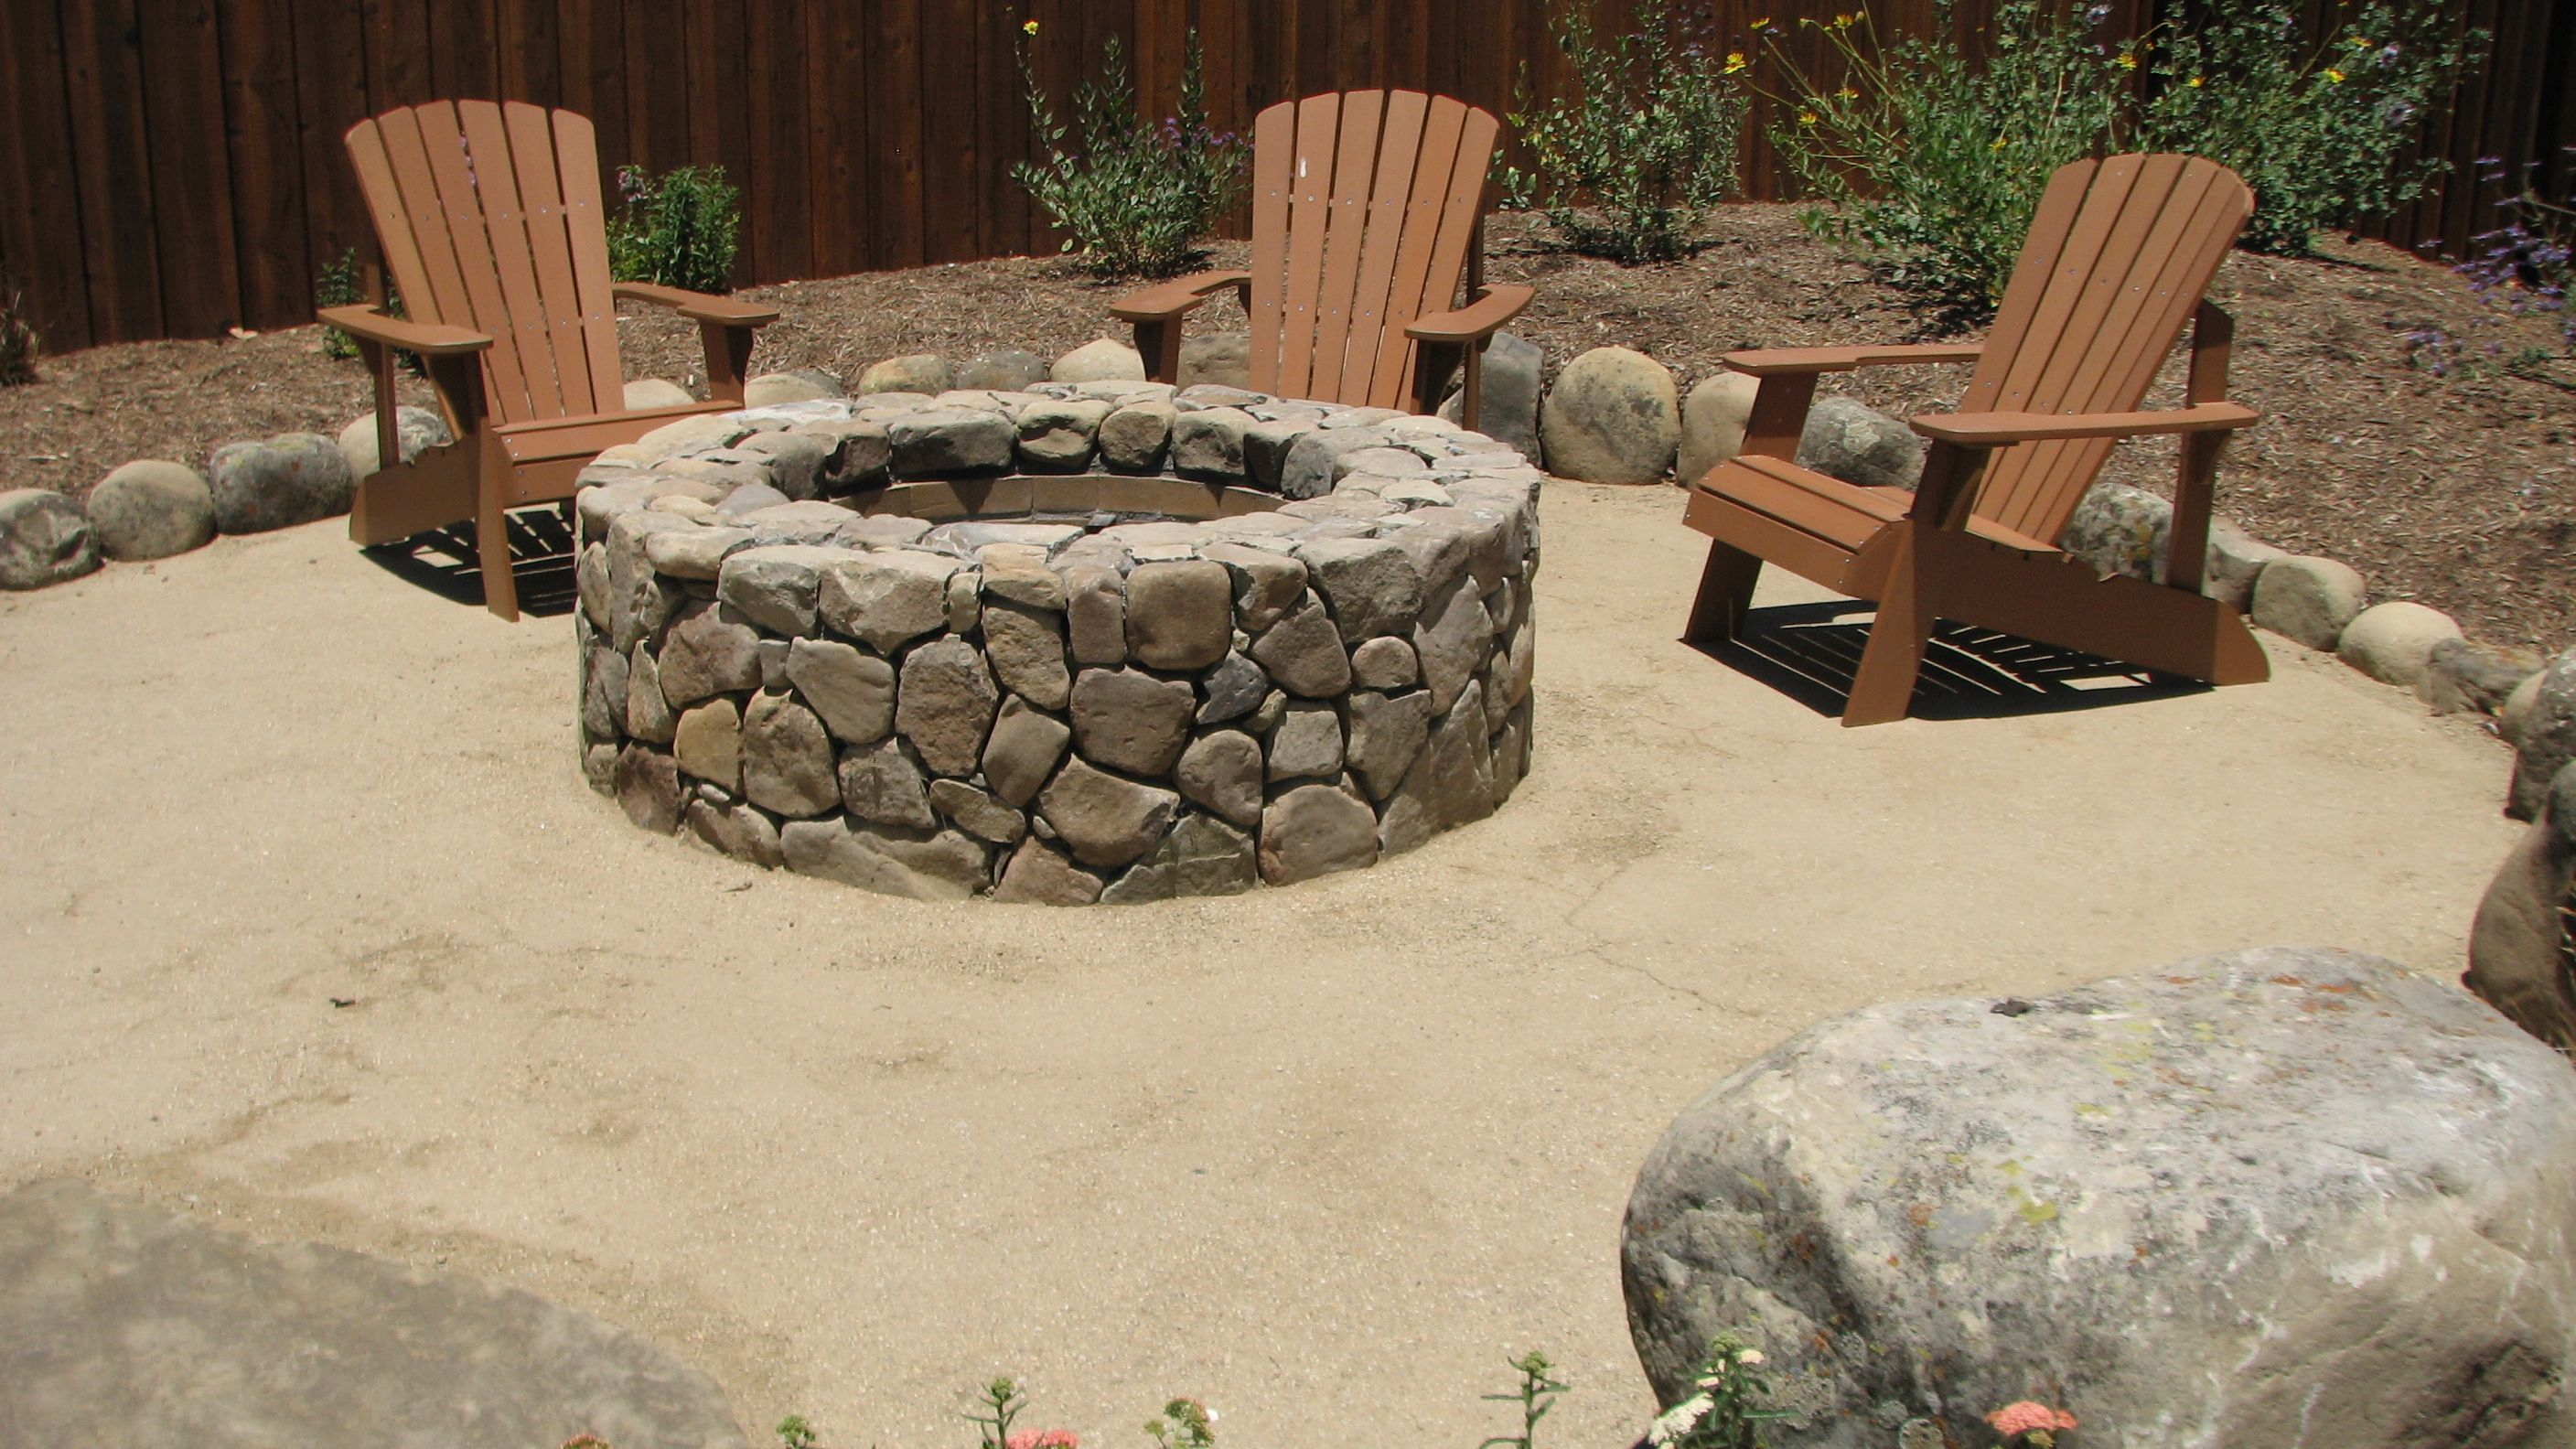 Stone Fire Pit In Decomposed Granite Patio The Essential Garden Hardscapefirepit Decomposed Granite Patio Fire Pit Patio Fire Pit Backyard